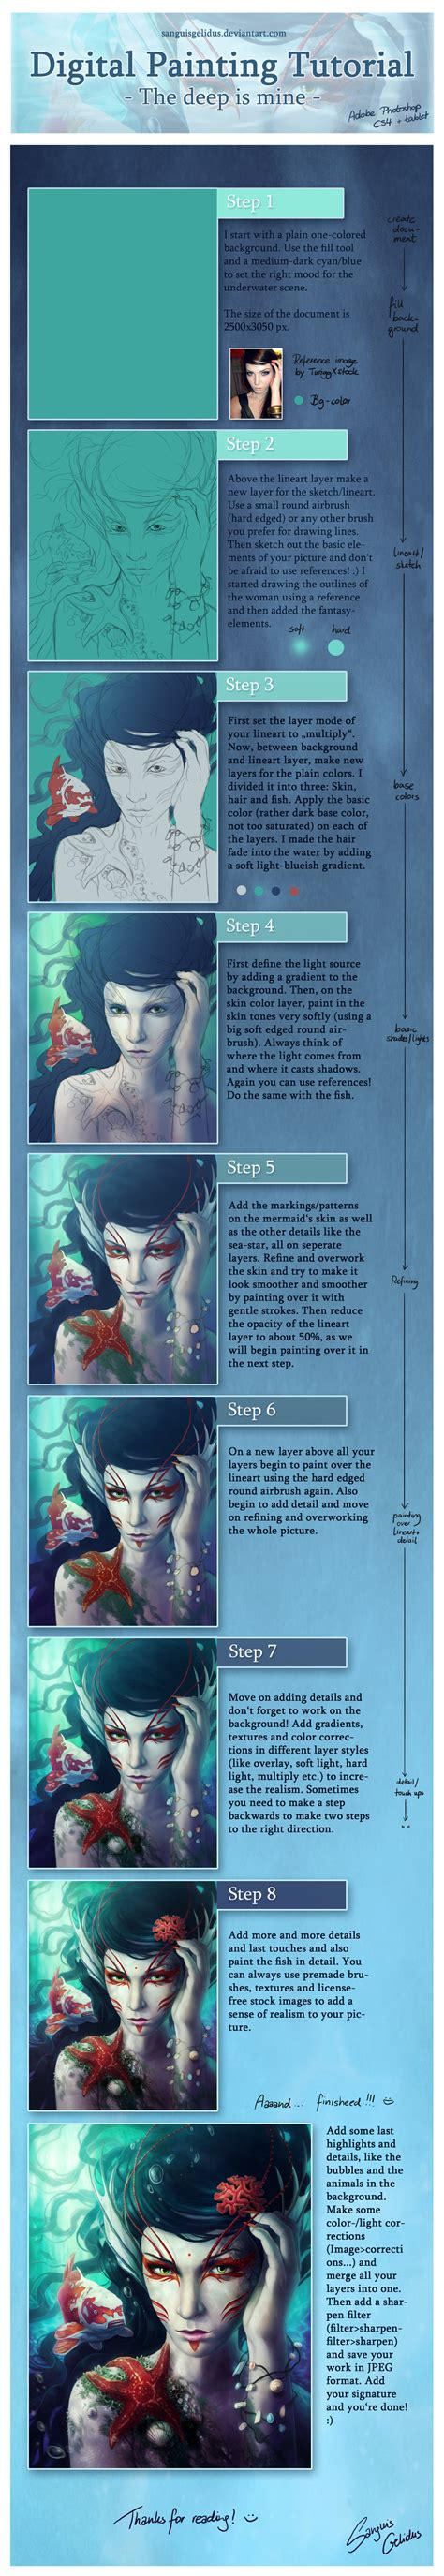 tutorial photoshop painting digital painting tutorial by jojoesart on deviantart